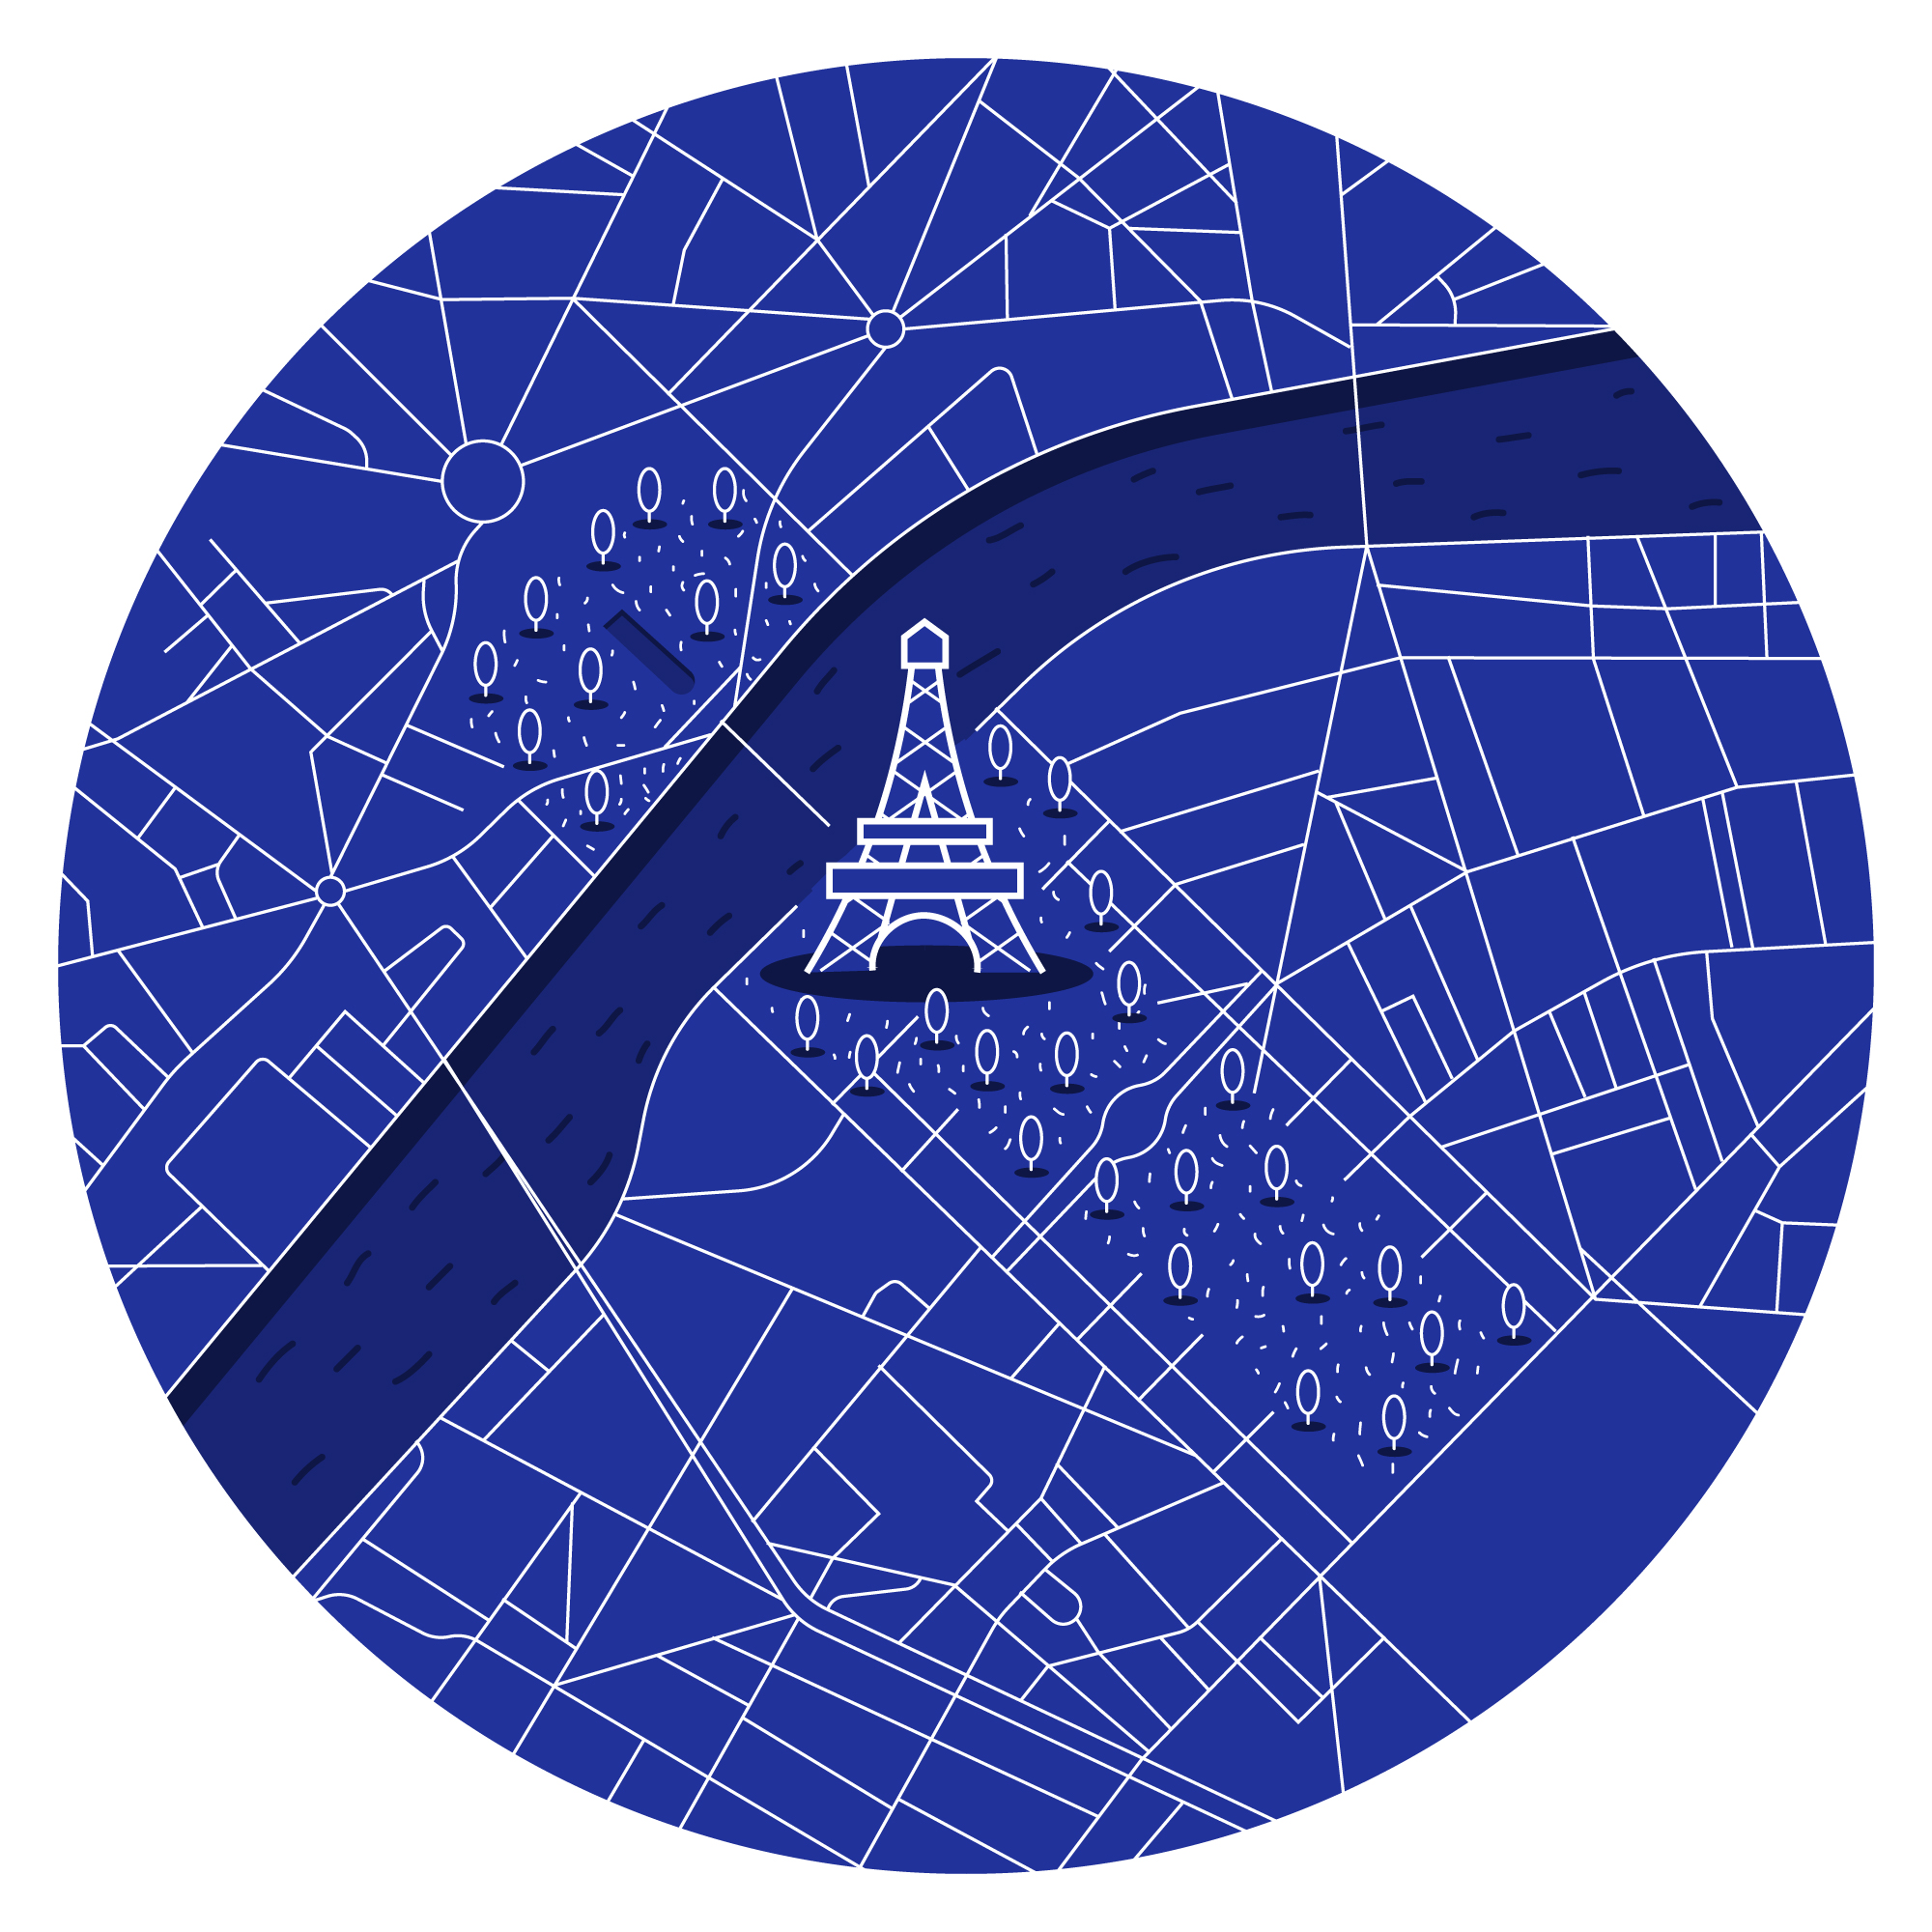 Eiffel Tower line art map